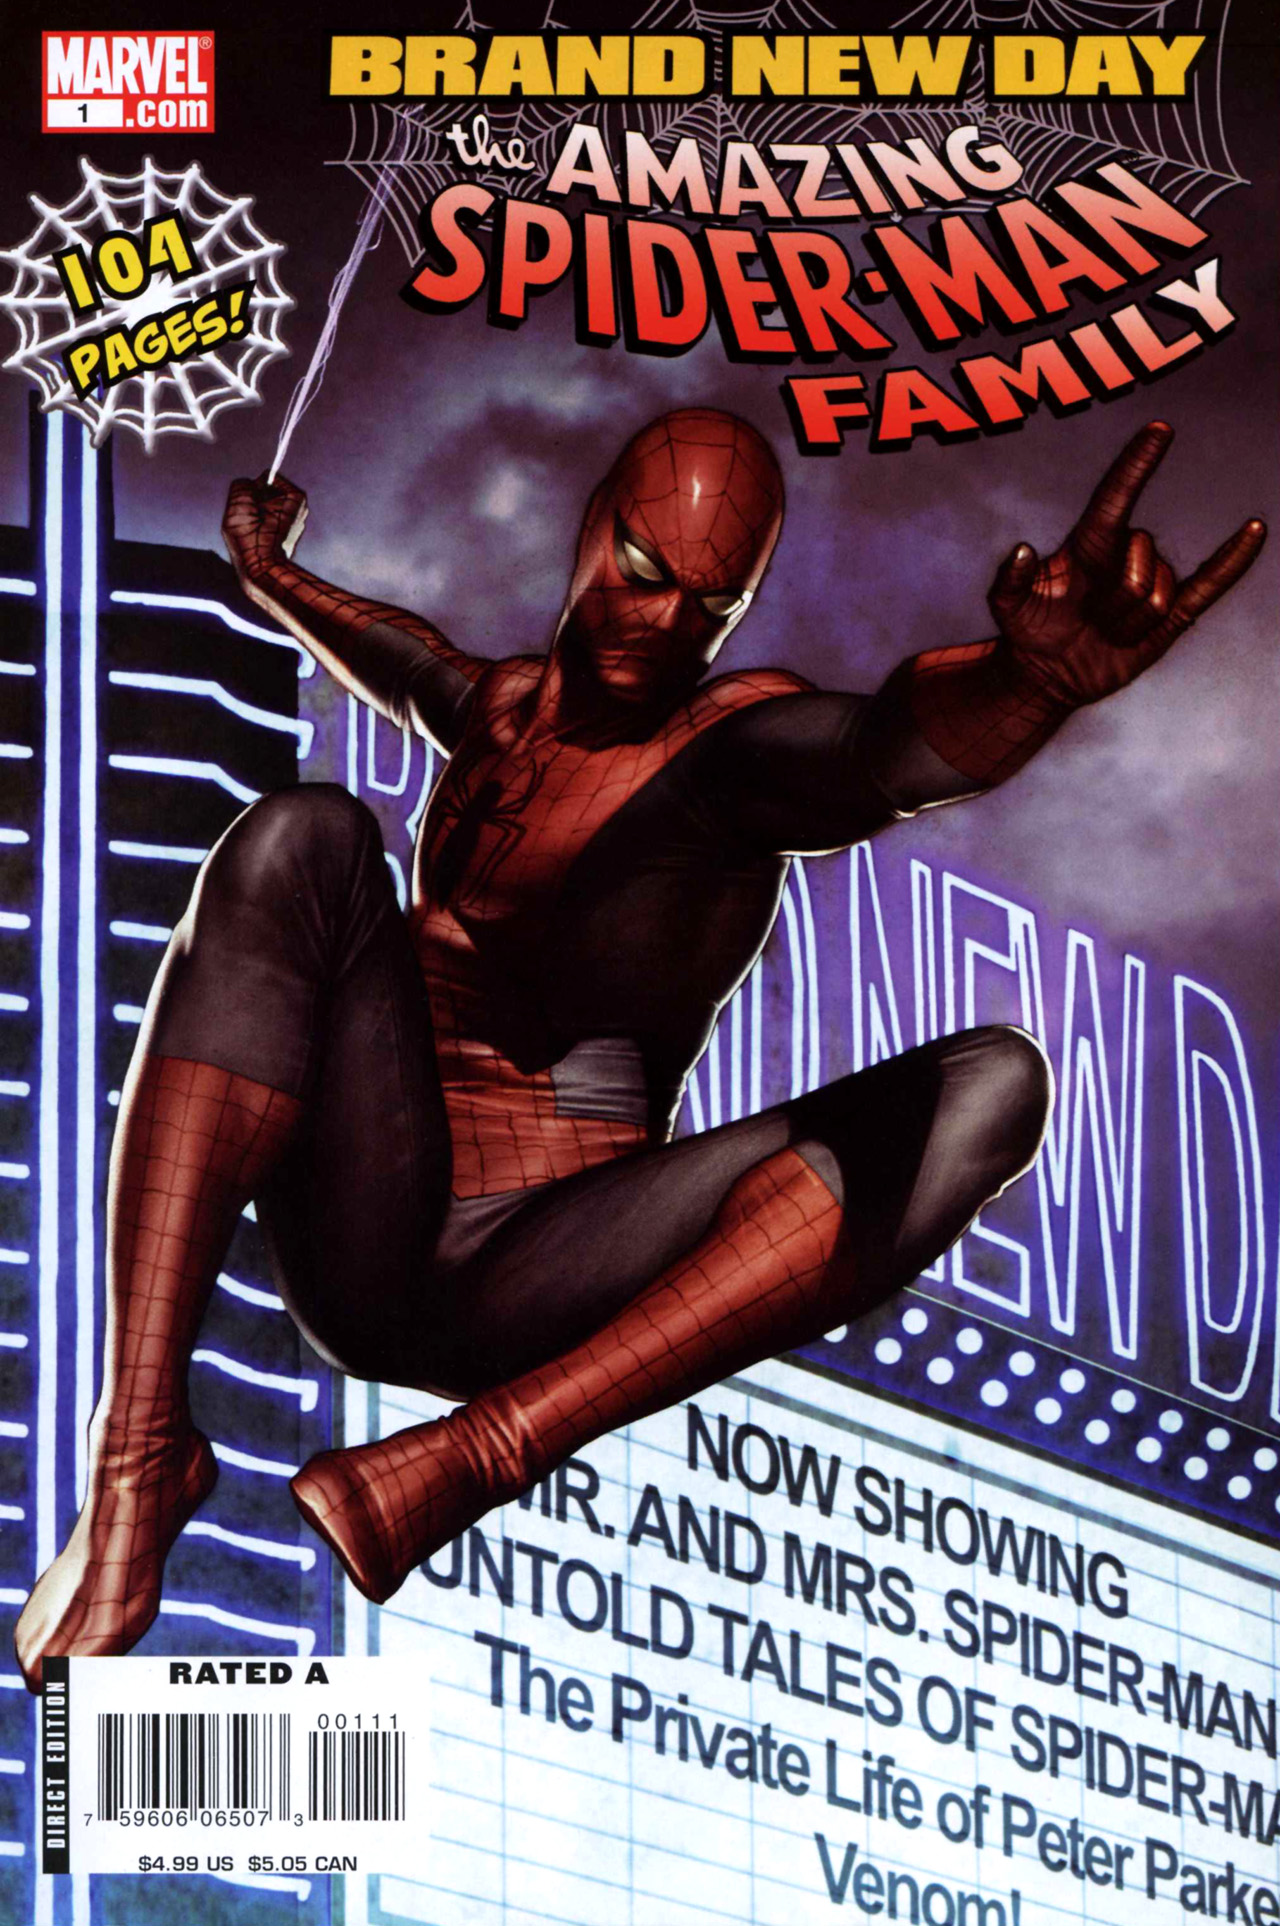 Read online Amazing Spider-Man Family comic -  Issue #1 - 1